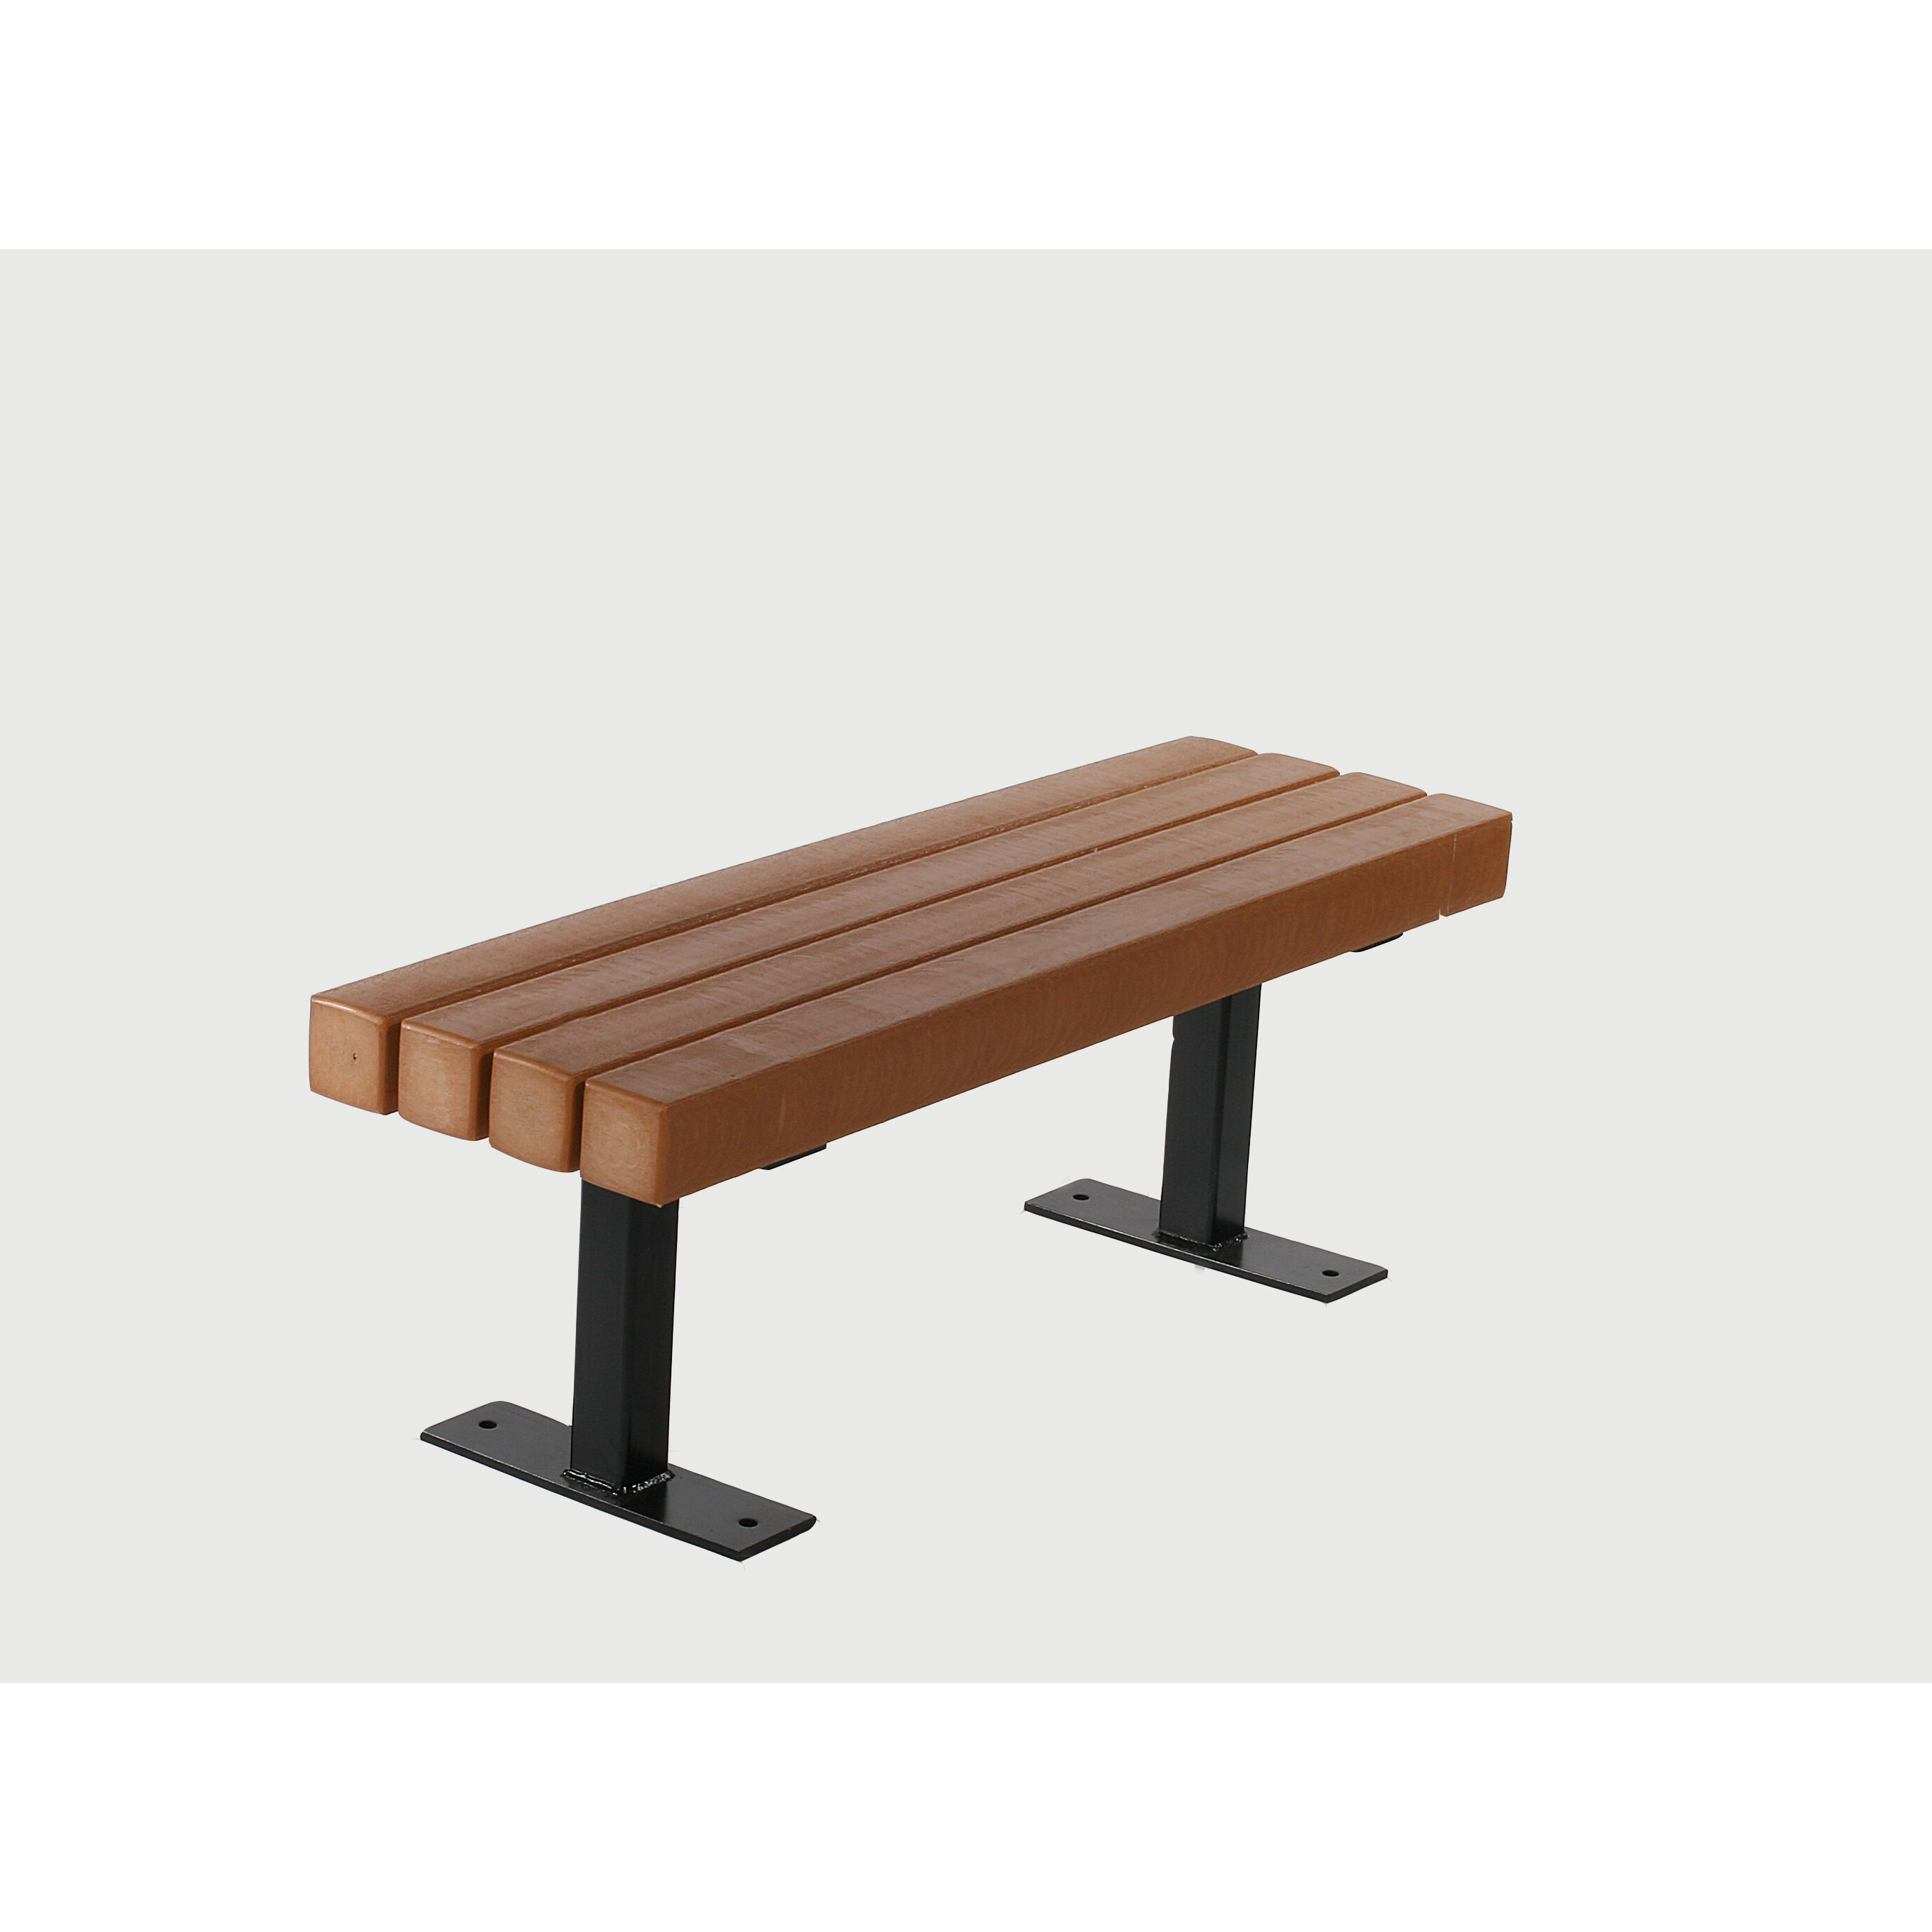 Frog Furnishings Trailside Recycled Plastic Park Bench Reviews Wayfair